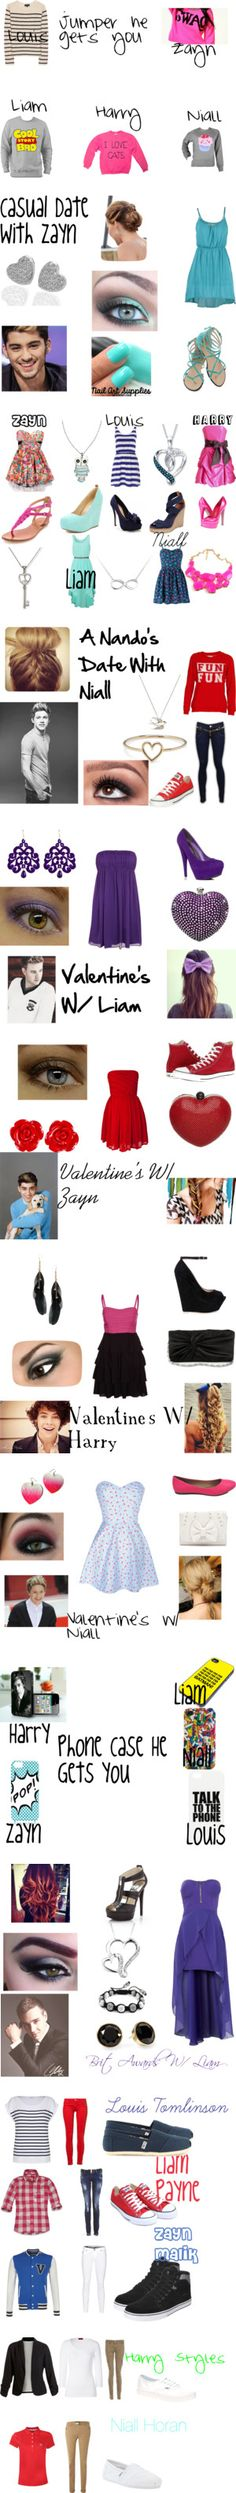 """One Direction Preferences, Imagines, Outfits, and more!"" by avagrace2001 on Polyvore"